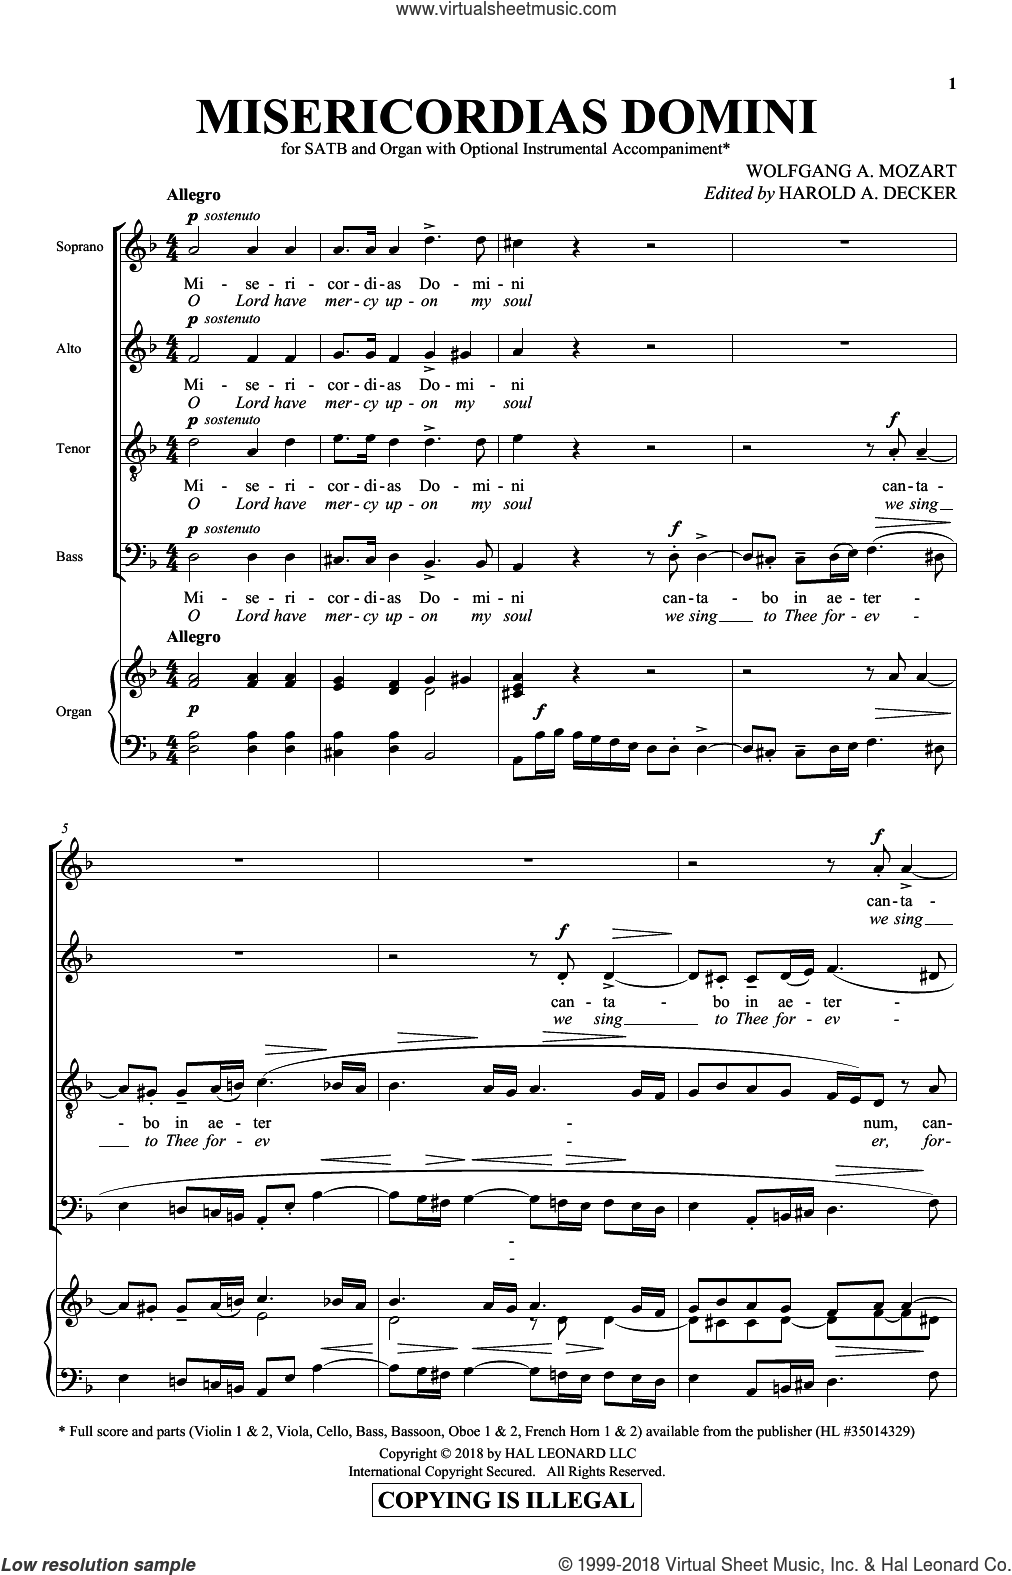 Misericordias Domini sheet music for choir (SATB: soprano, alto, tenor, bass) by Wolfgang Amadeus Mozart and Harold Decker, classical score, intermediate skill level